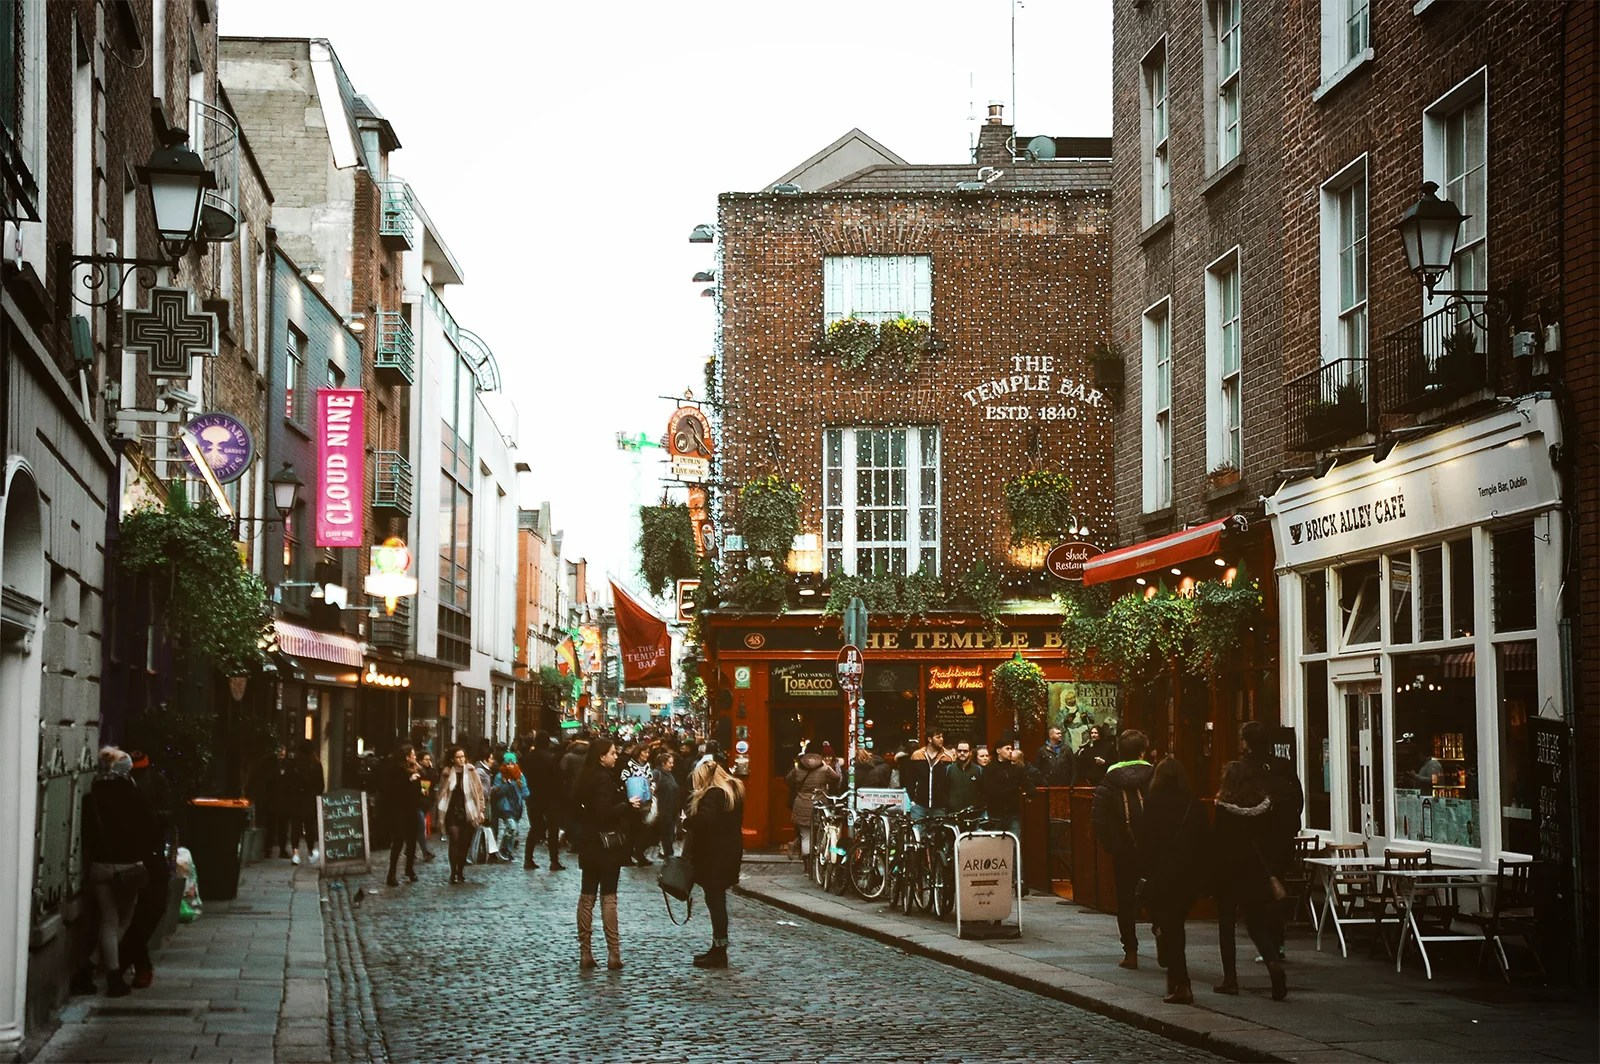 Taking my father to Ireland — reader success story